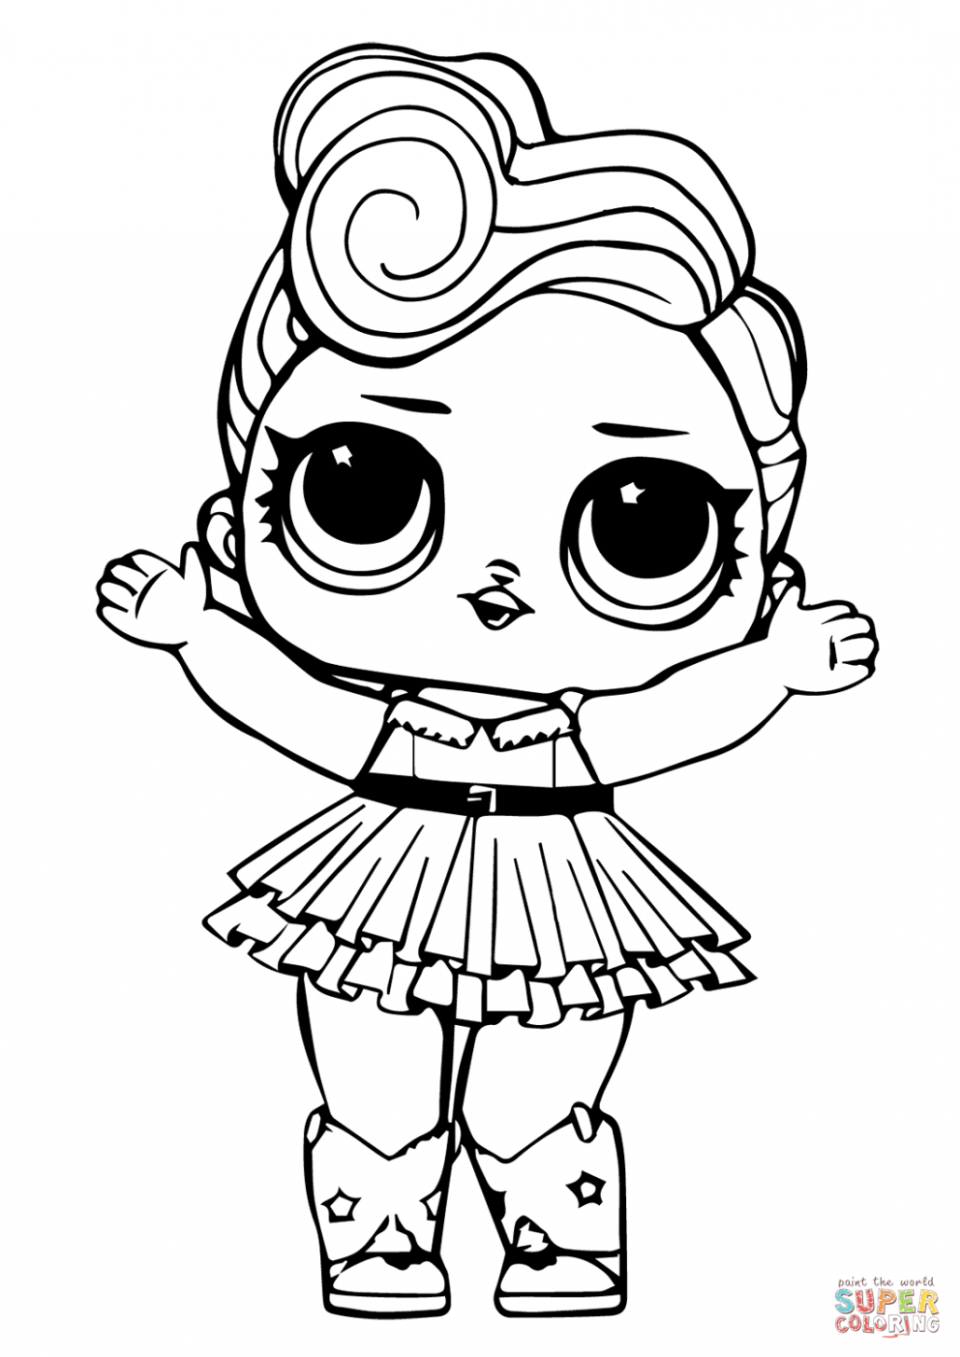 Seven Benefits Of Coloring Pages For Kids That May Change Your Perspective Coloring Page Unicorn Coloring Pages Animal Coloring Pages Princess Coloring Pages